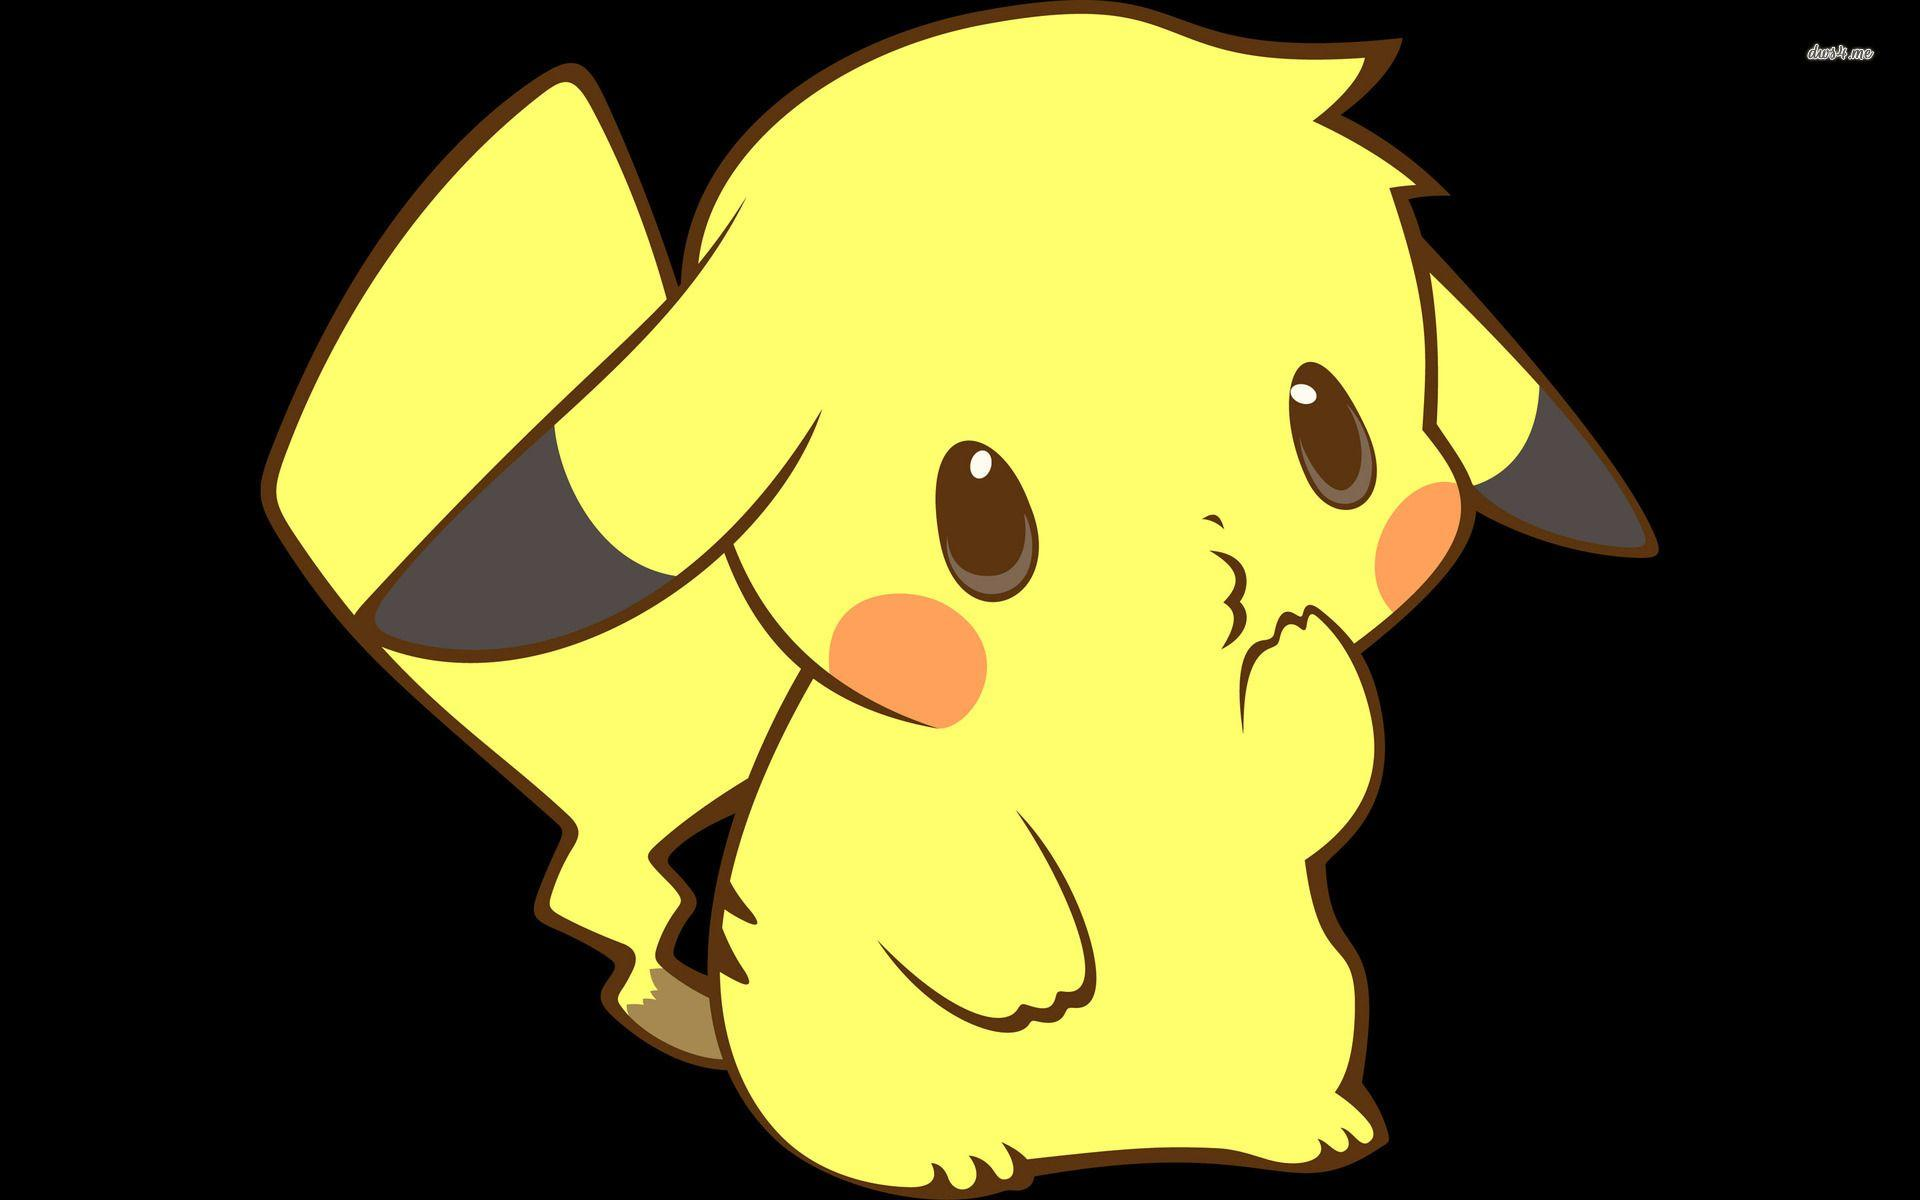 pikachu pokemon wallpaper - photo #32